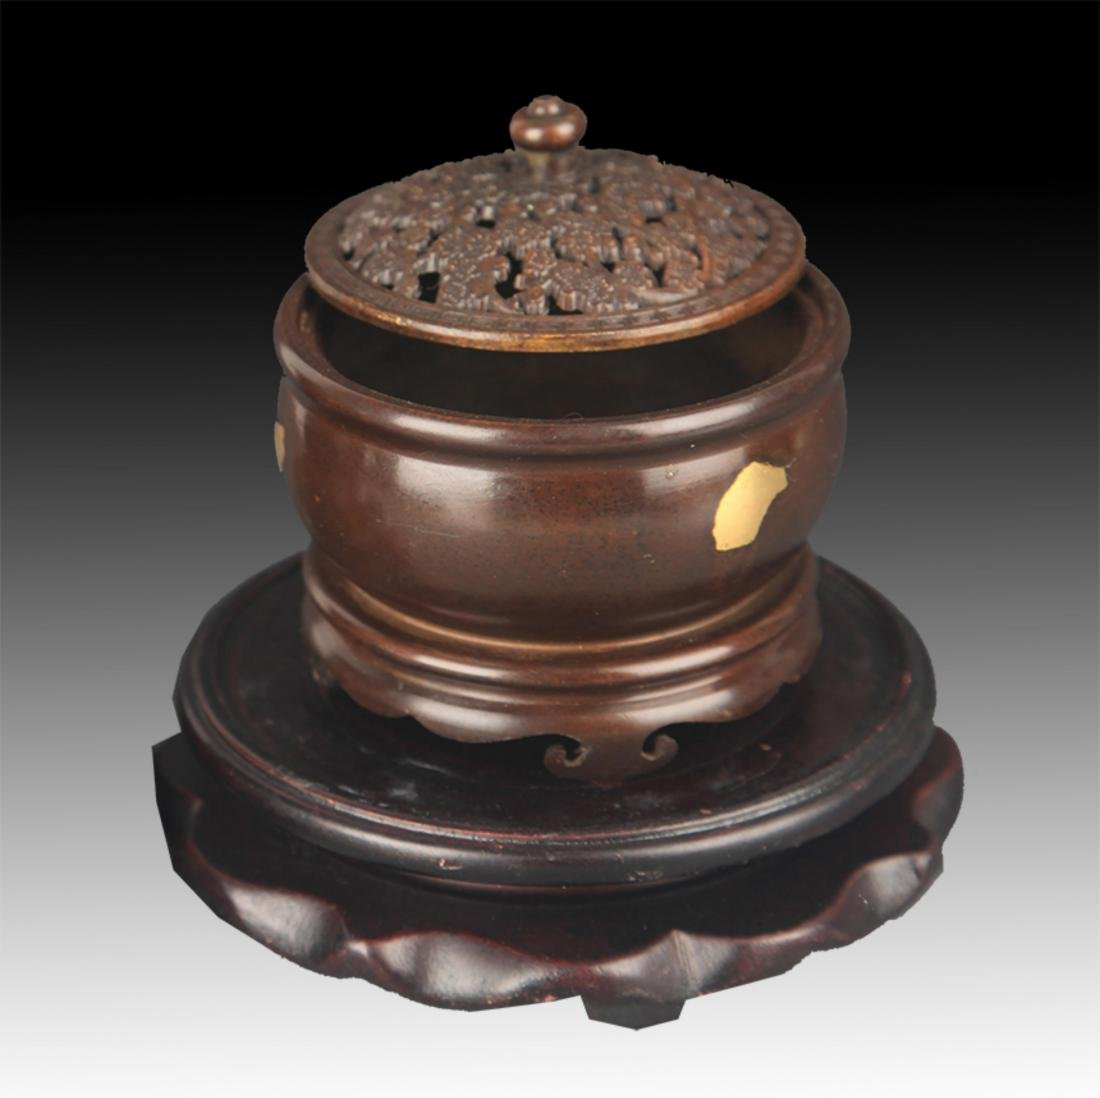 A SPIKLE GOLD ROUND BRONZE AROMATHERAPY